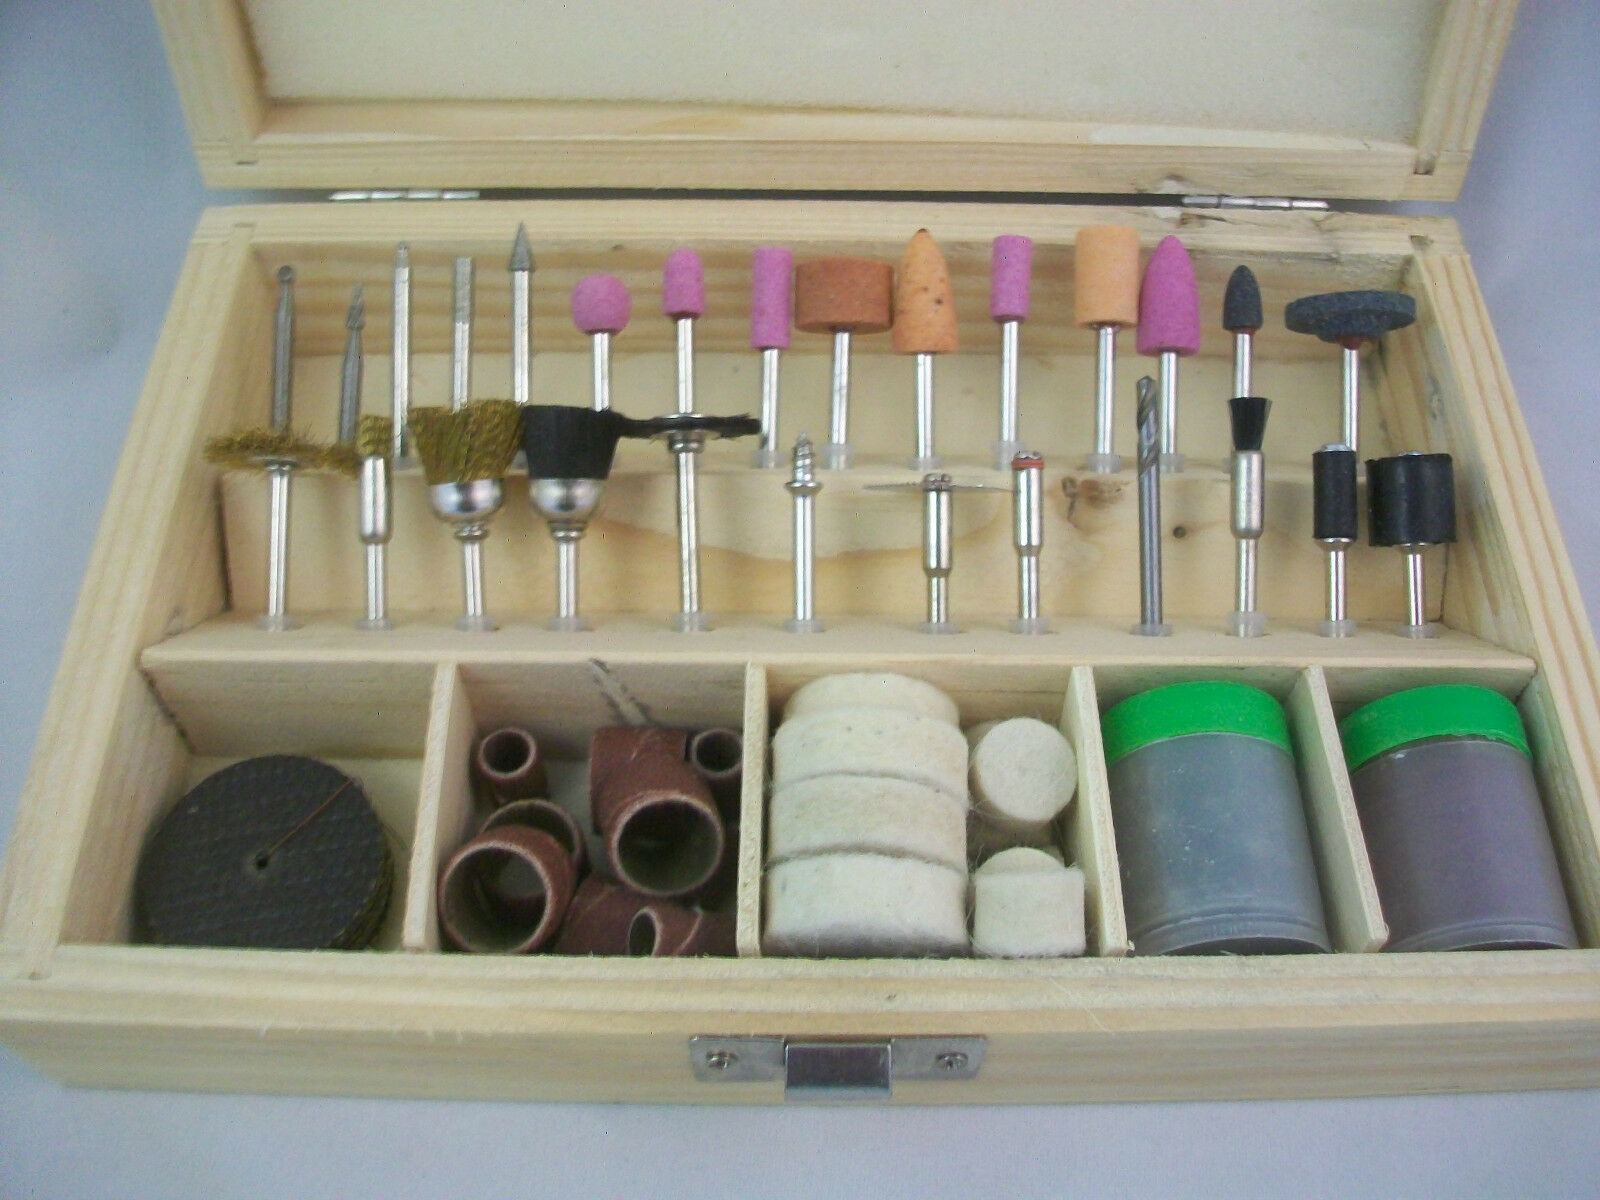 Rotary Tool Accessory 100 Pc Works With Dremel And Other Rotary Tools